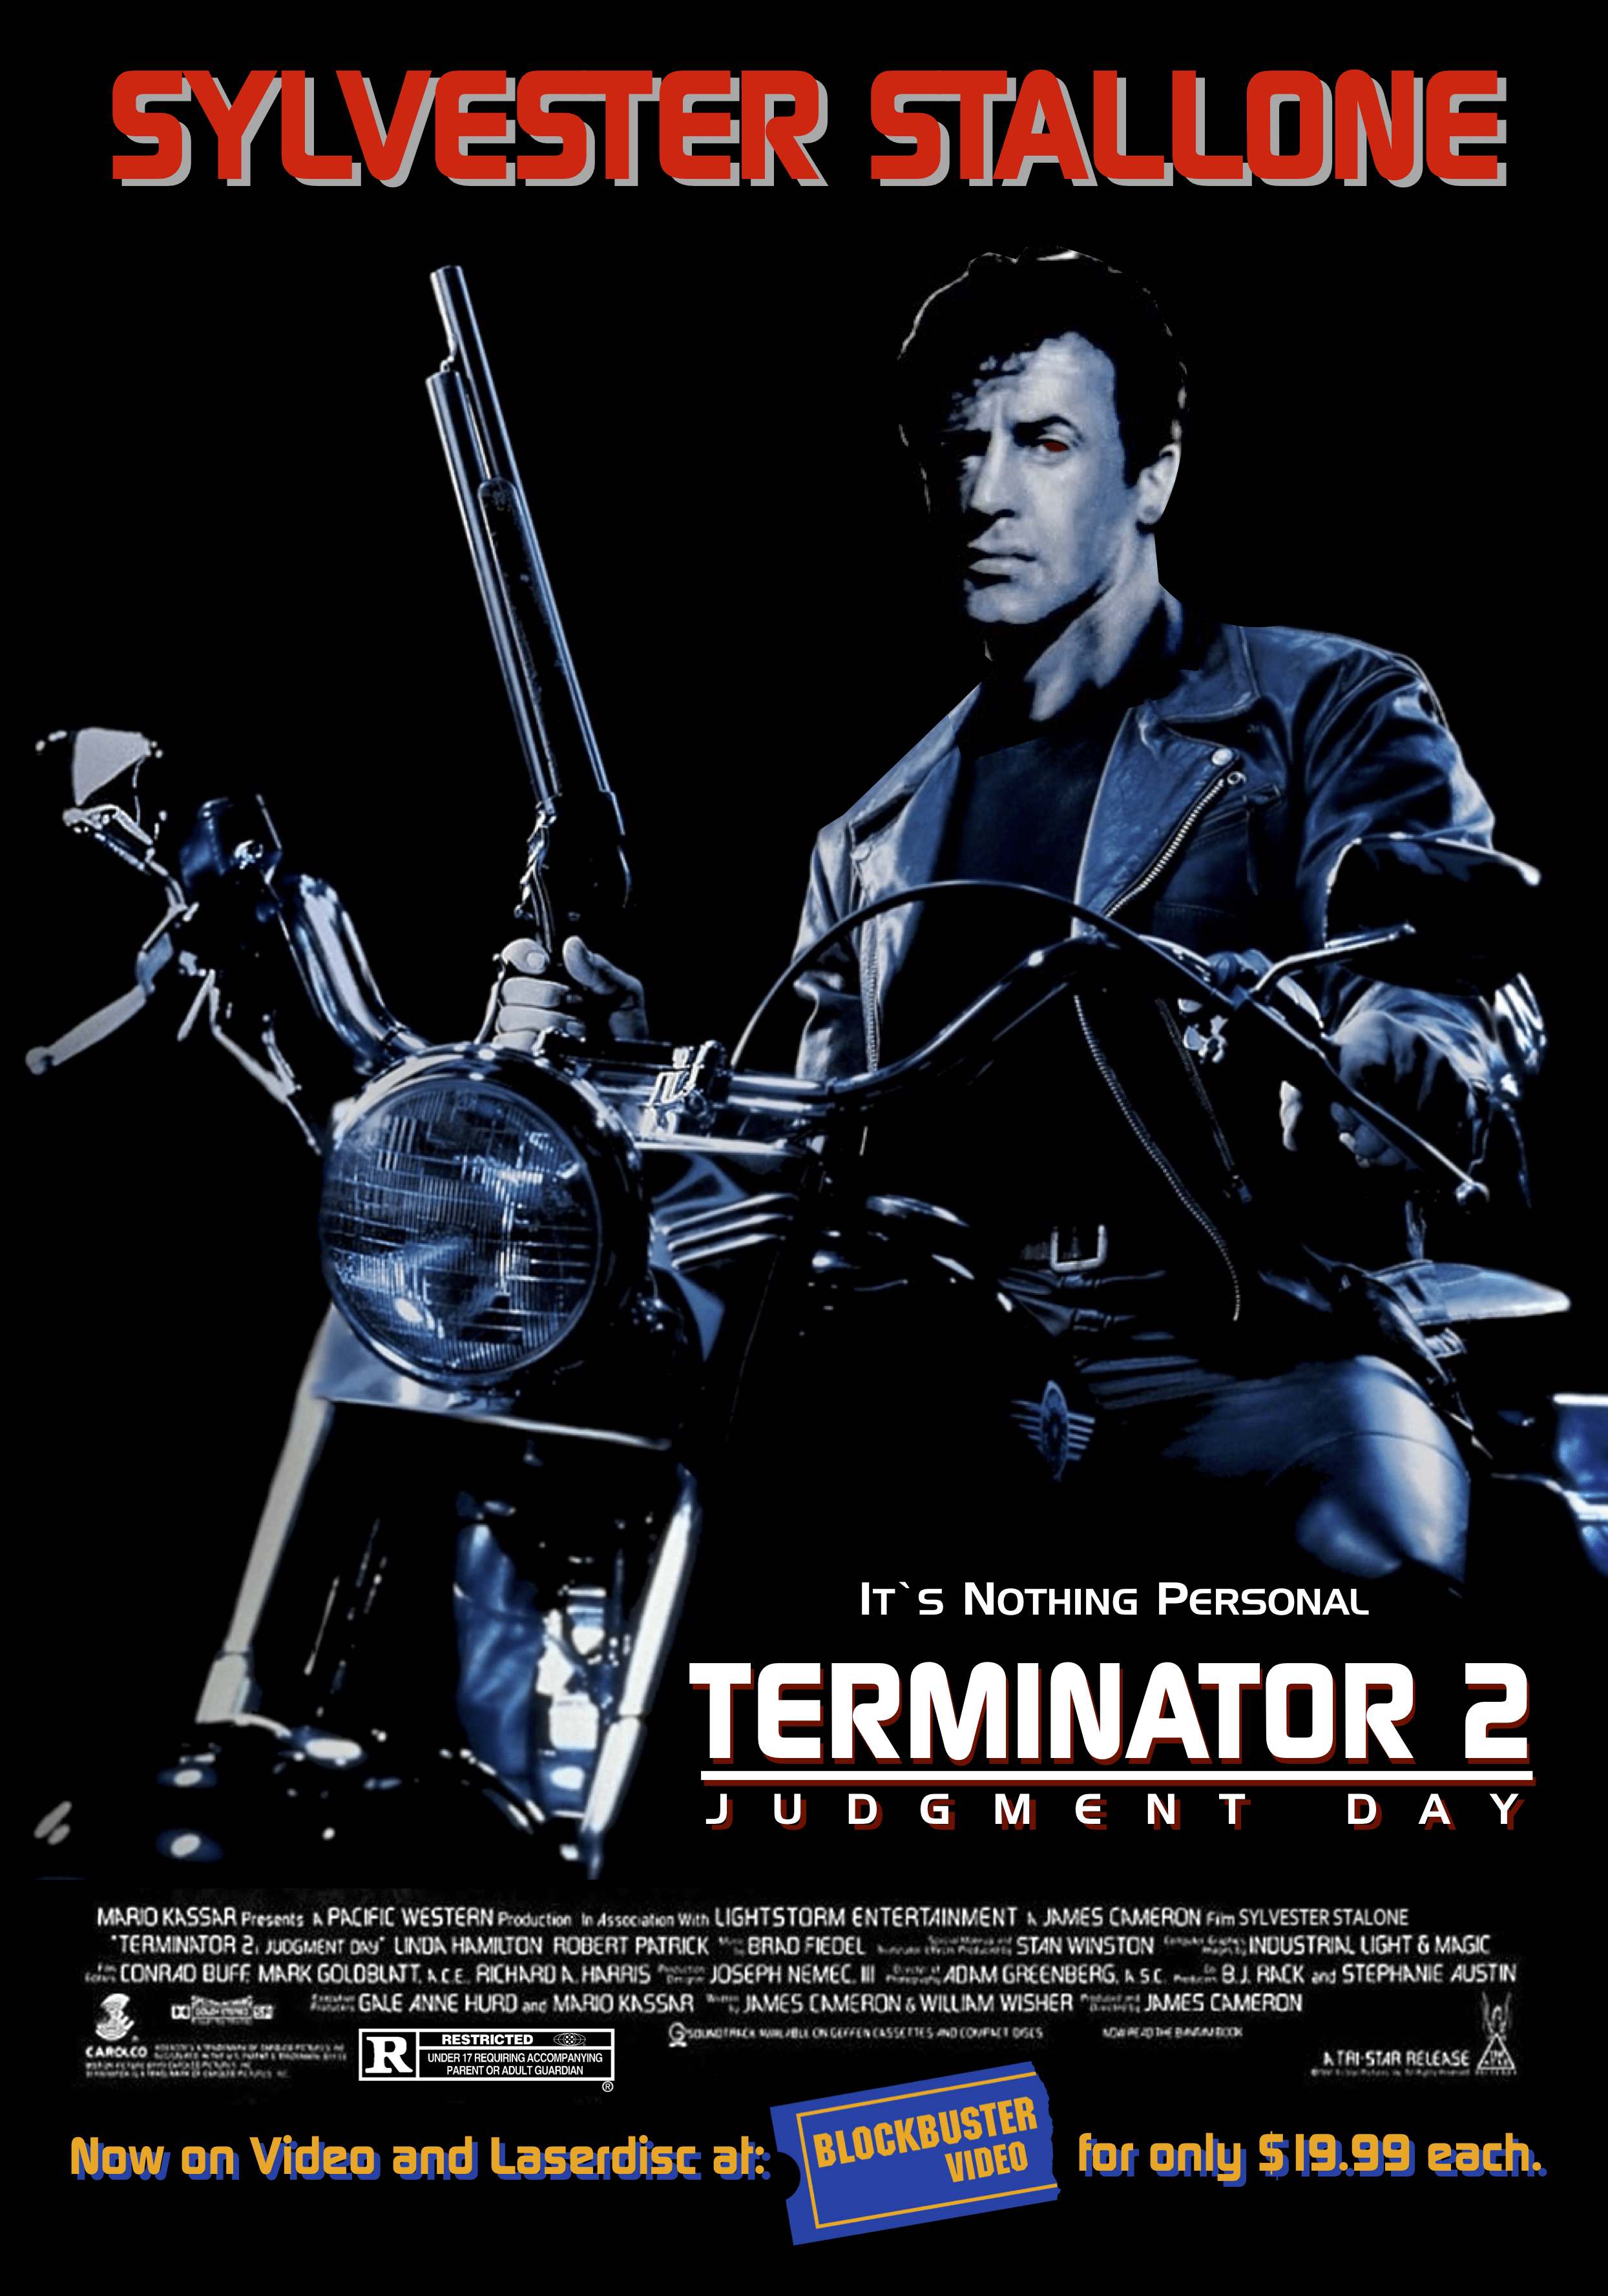 """Sly Stallone Starring in """"Terminator 2: Judgment Day ..."""